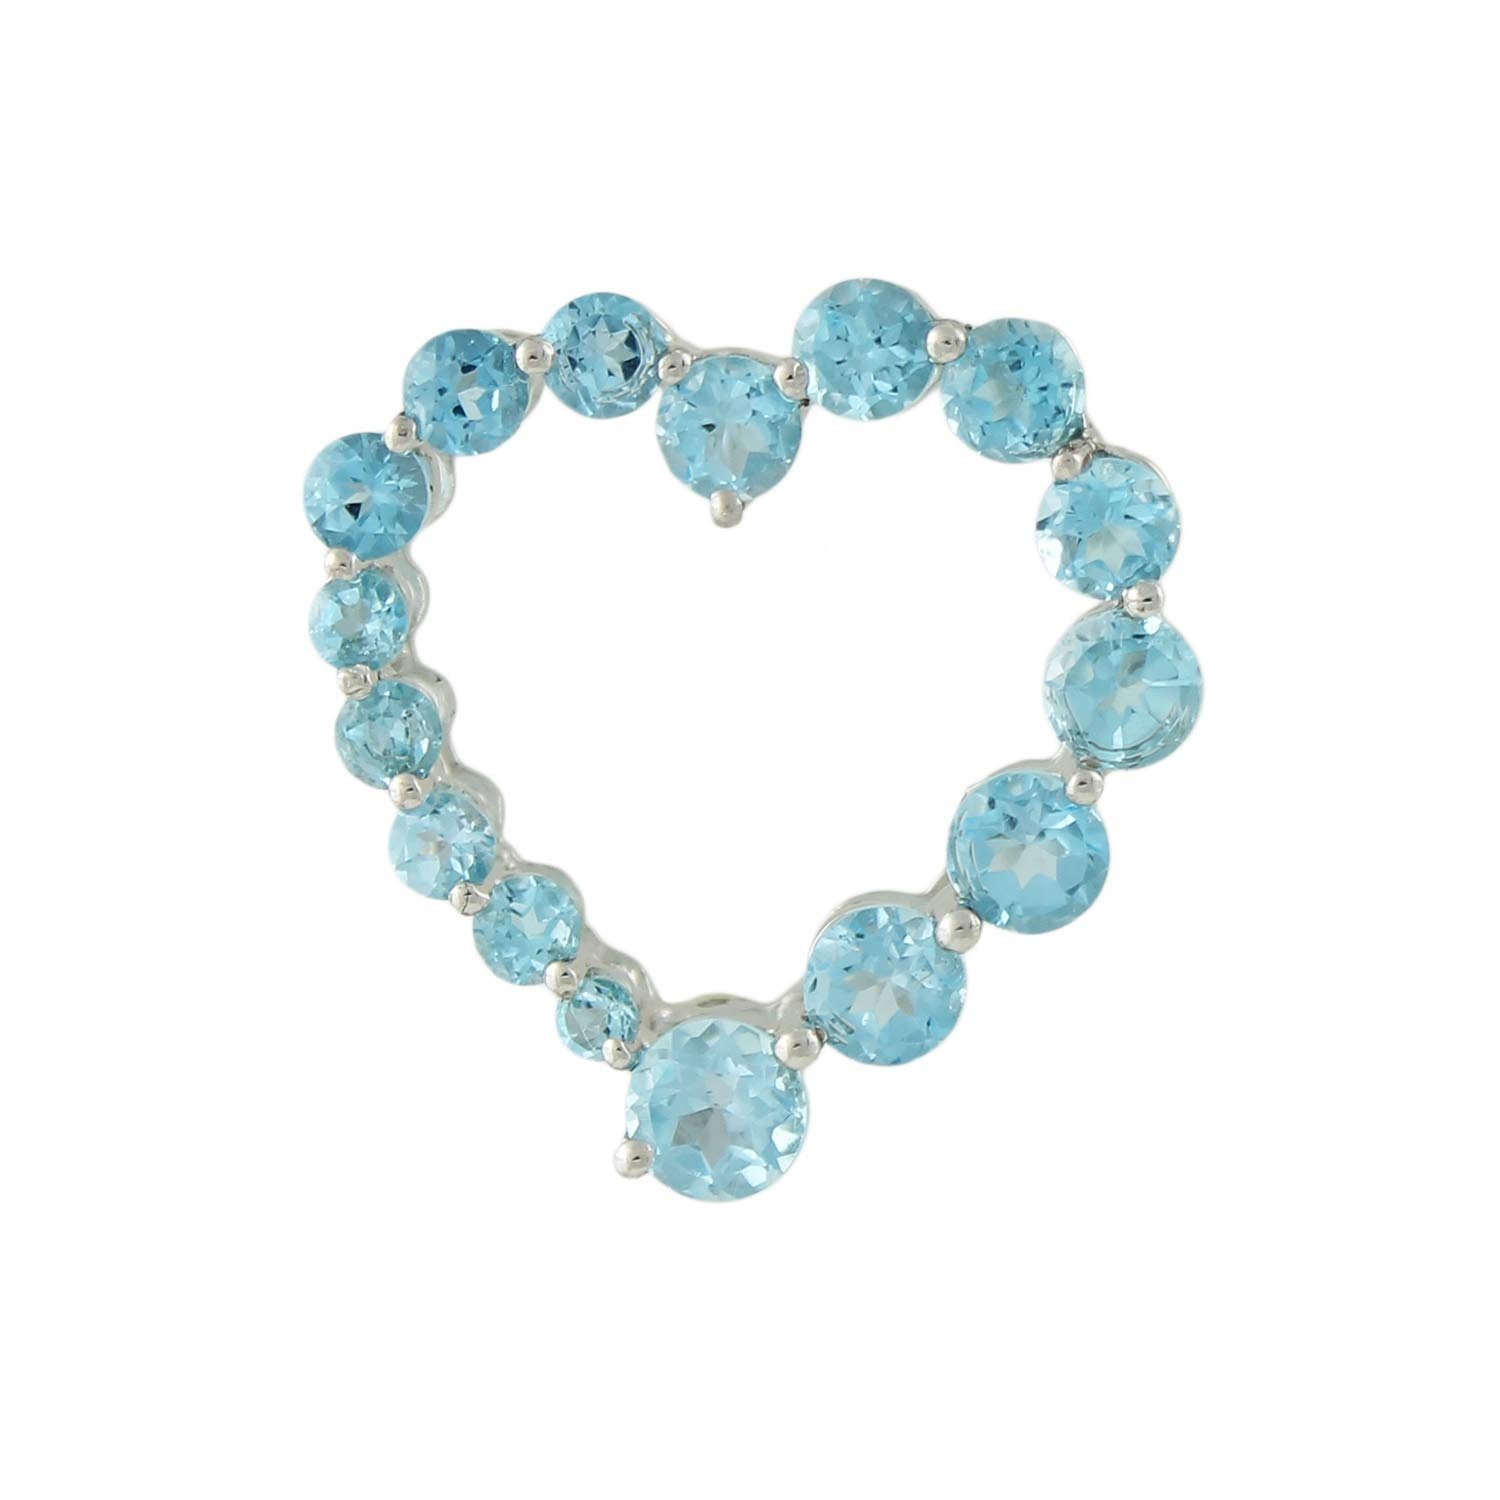 Pinctore Sterling Silver 3.09ctw Swiss Blue Topaz Heart Pendant 0.93L with 18 Chain